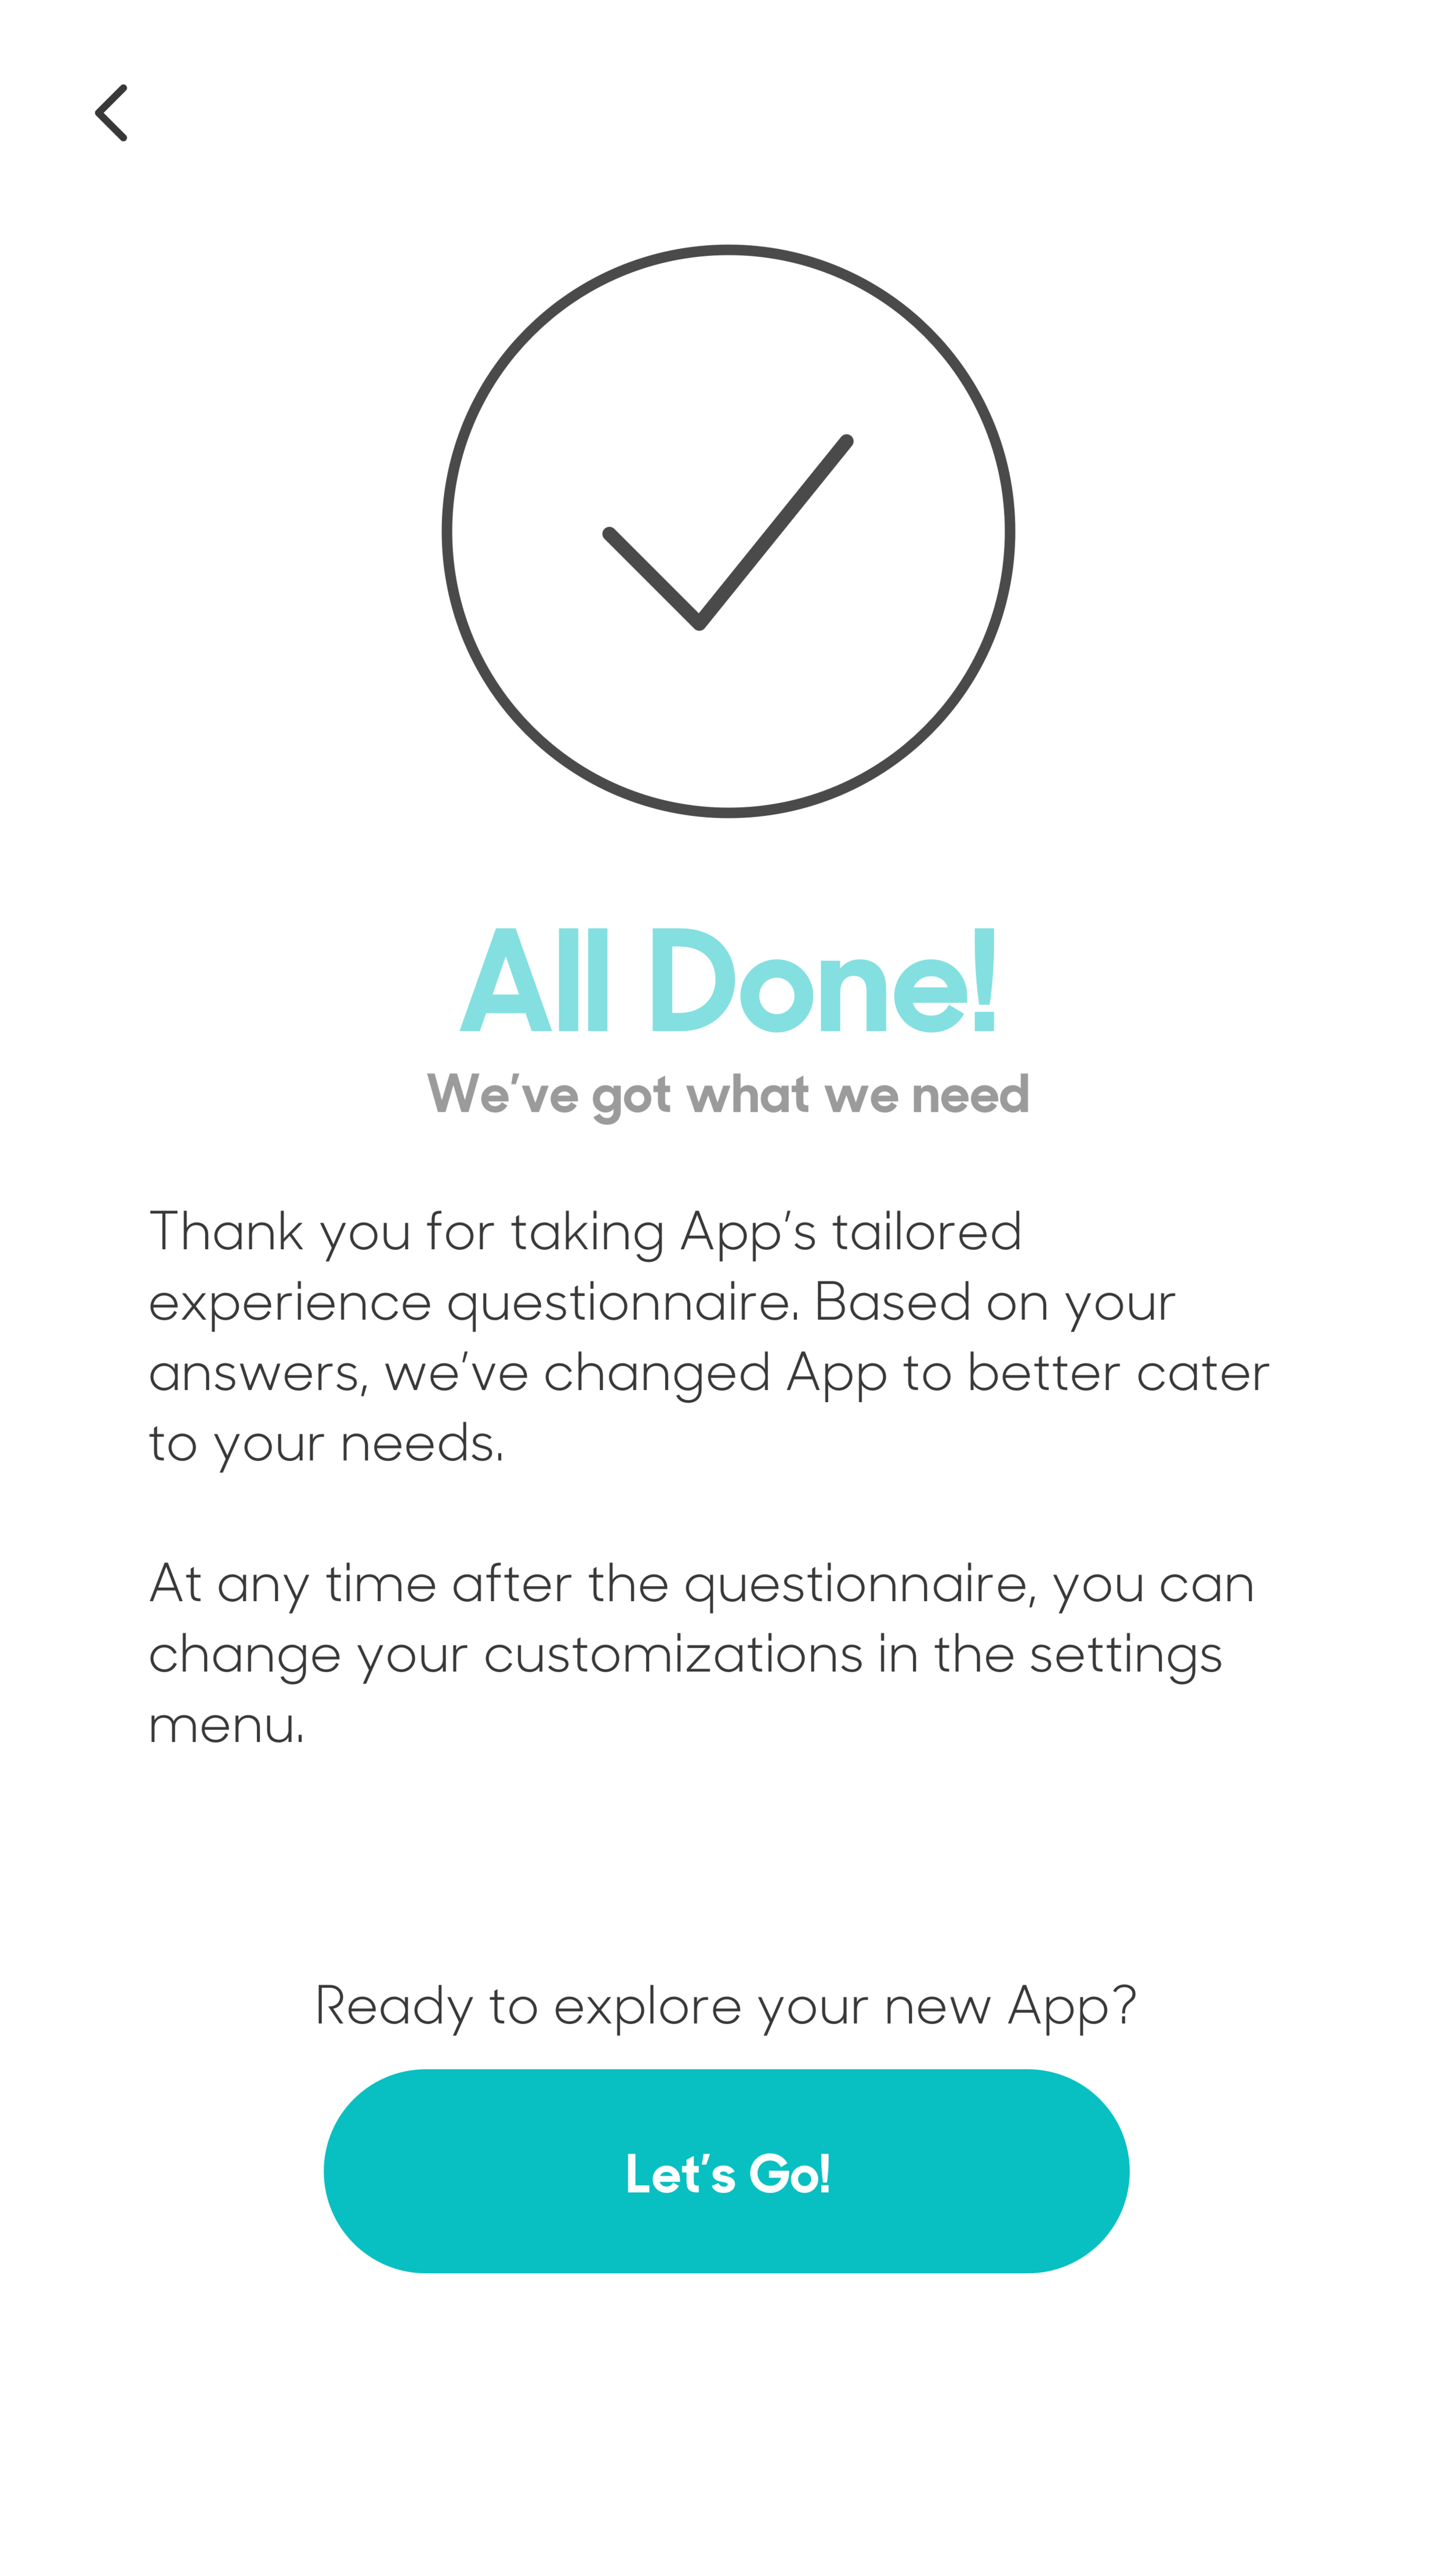 Confirmation page for the users so they know that the quiz has been completed and that the answers will create a change on their app.